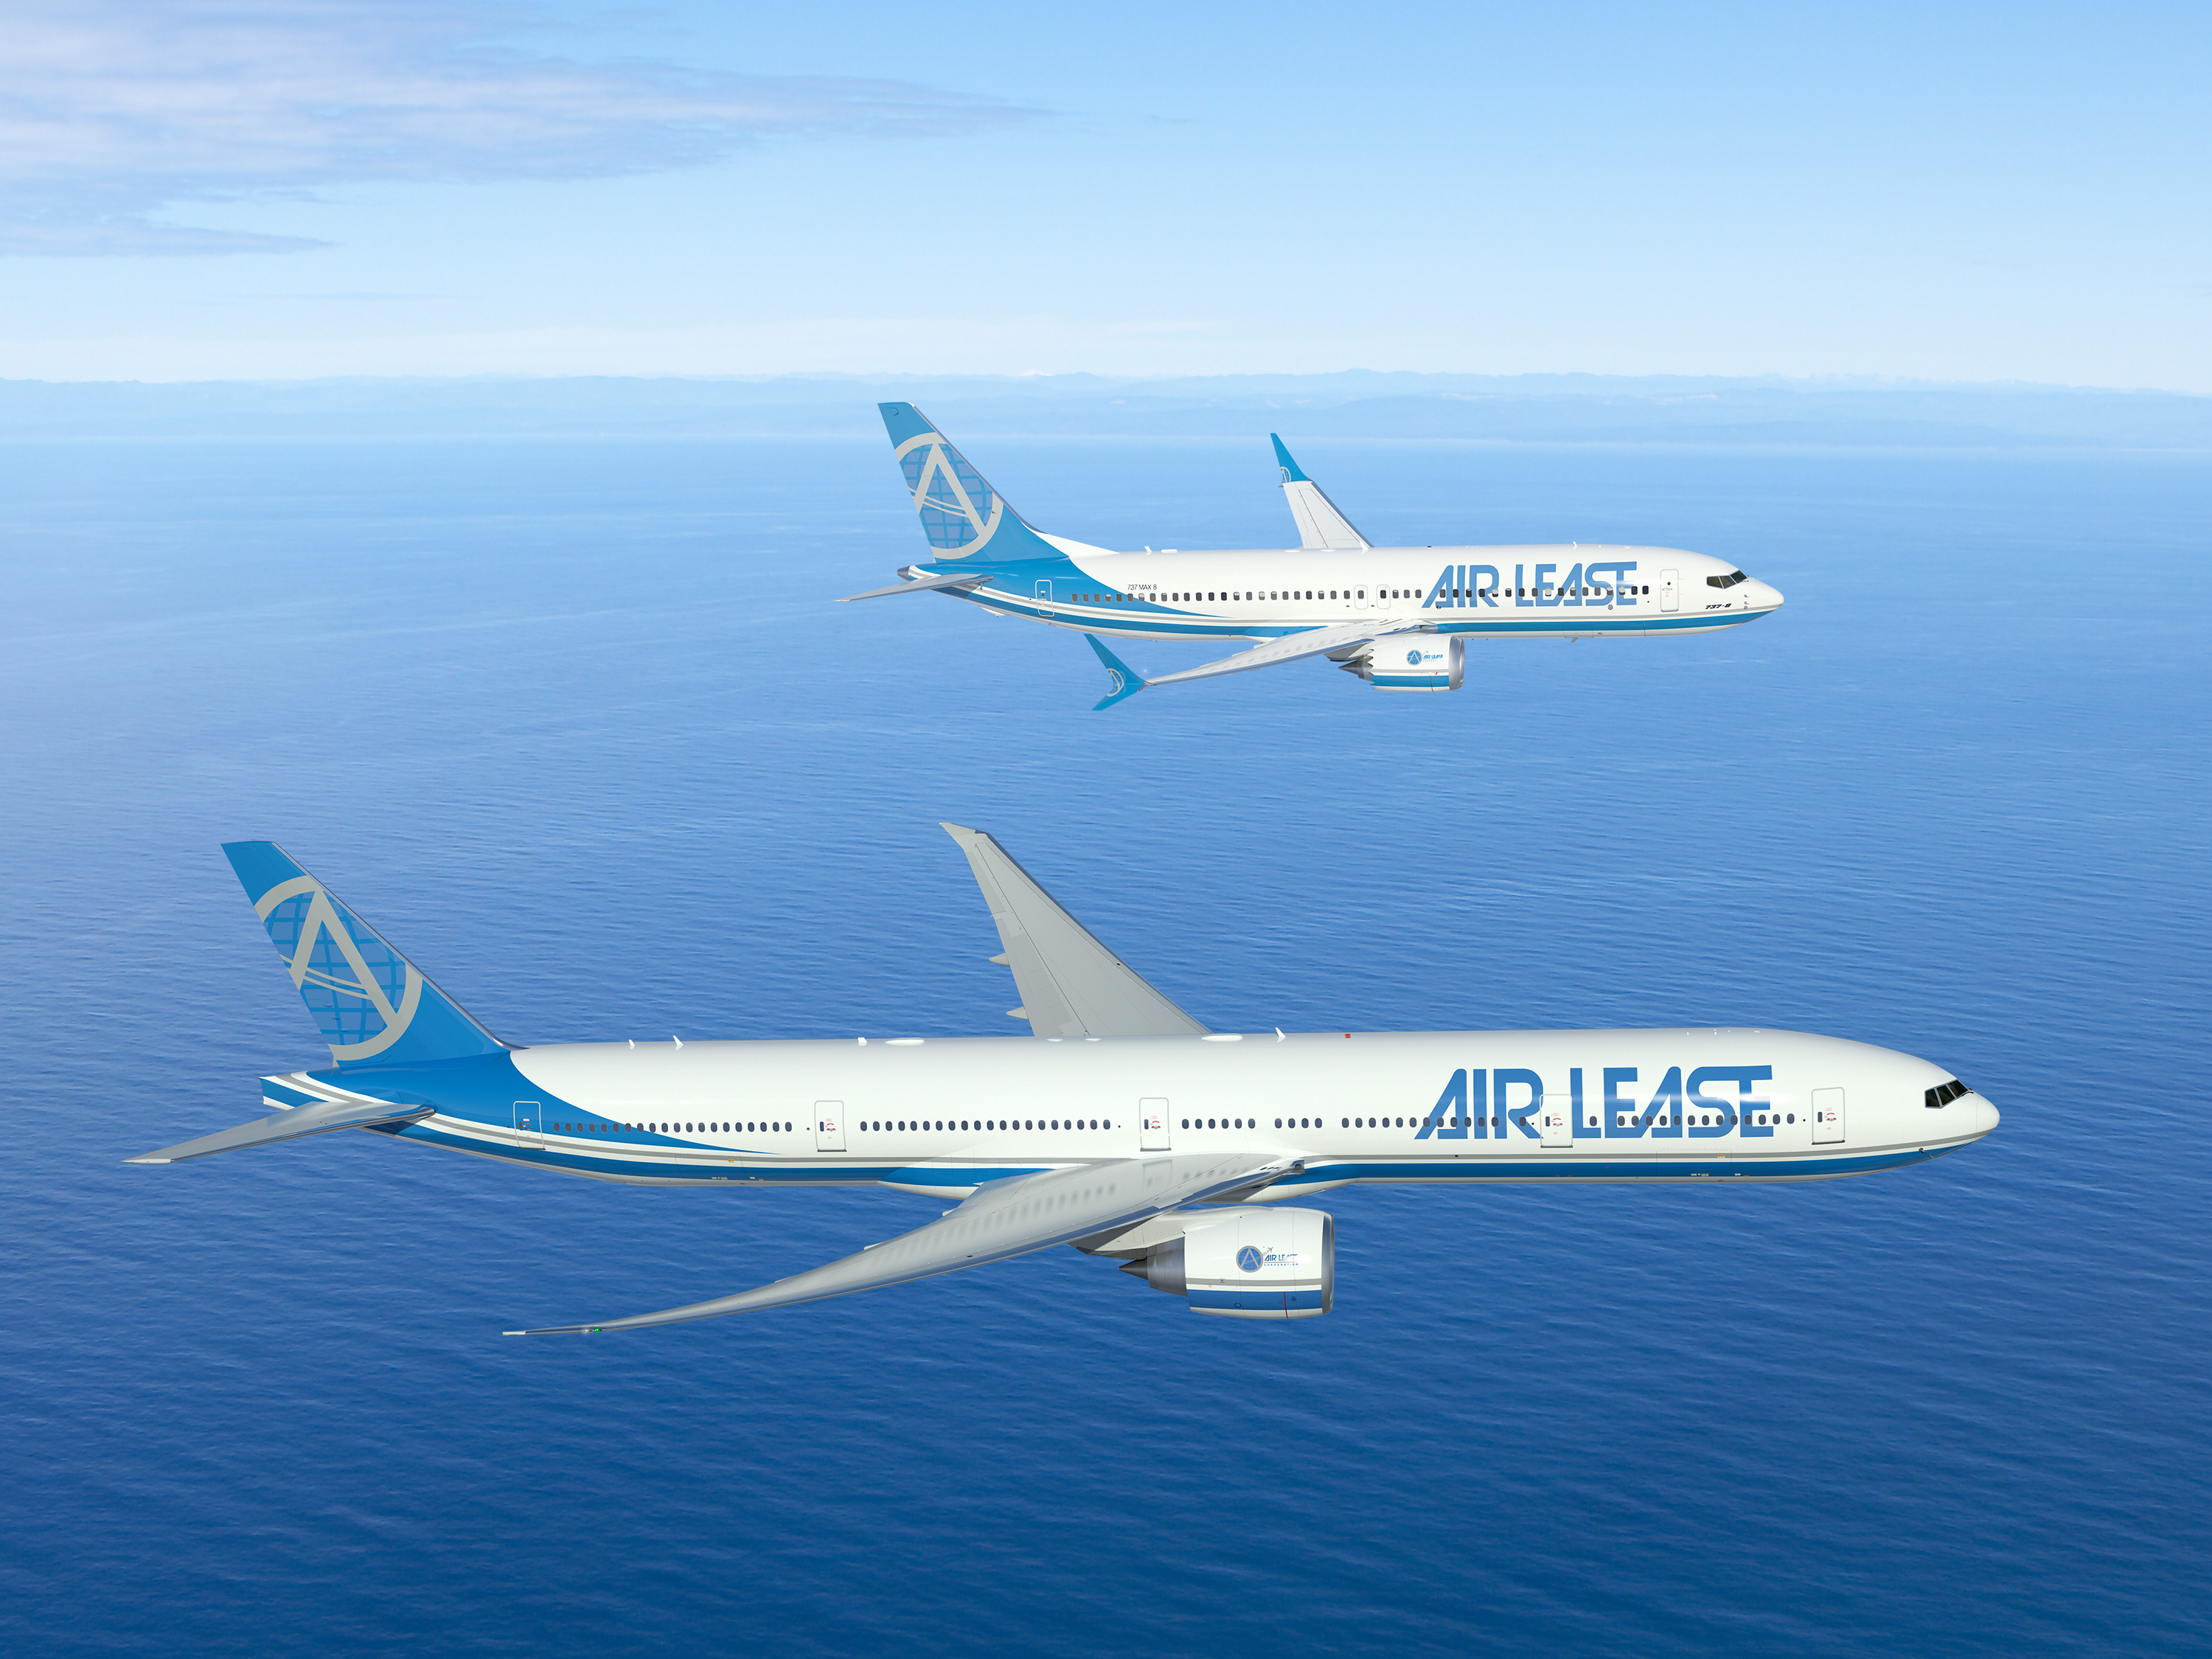 Air Lease Corporation 777 and 737MAX - www.smademedia.com